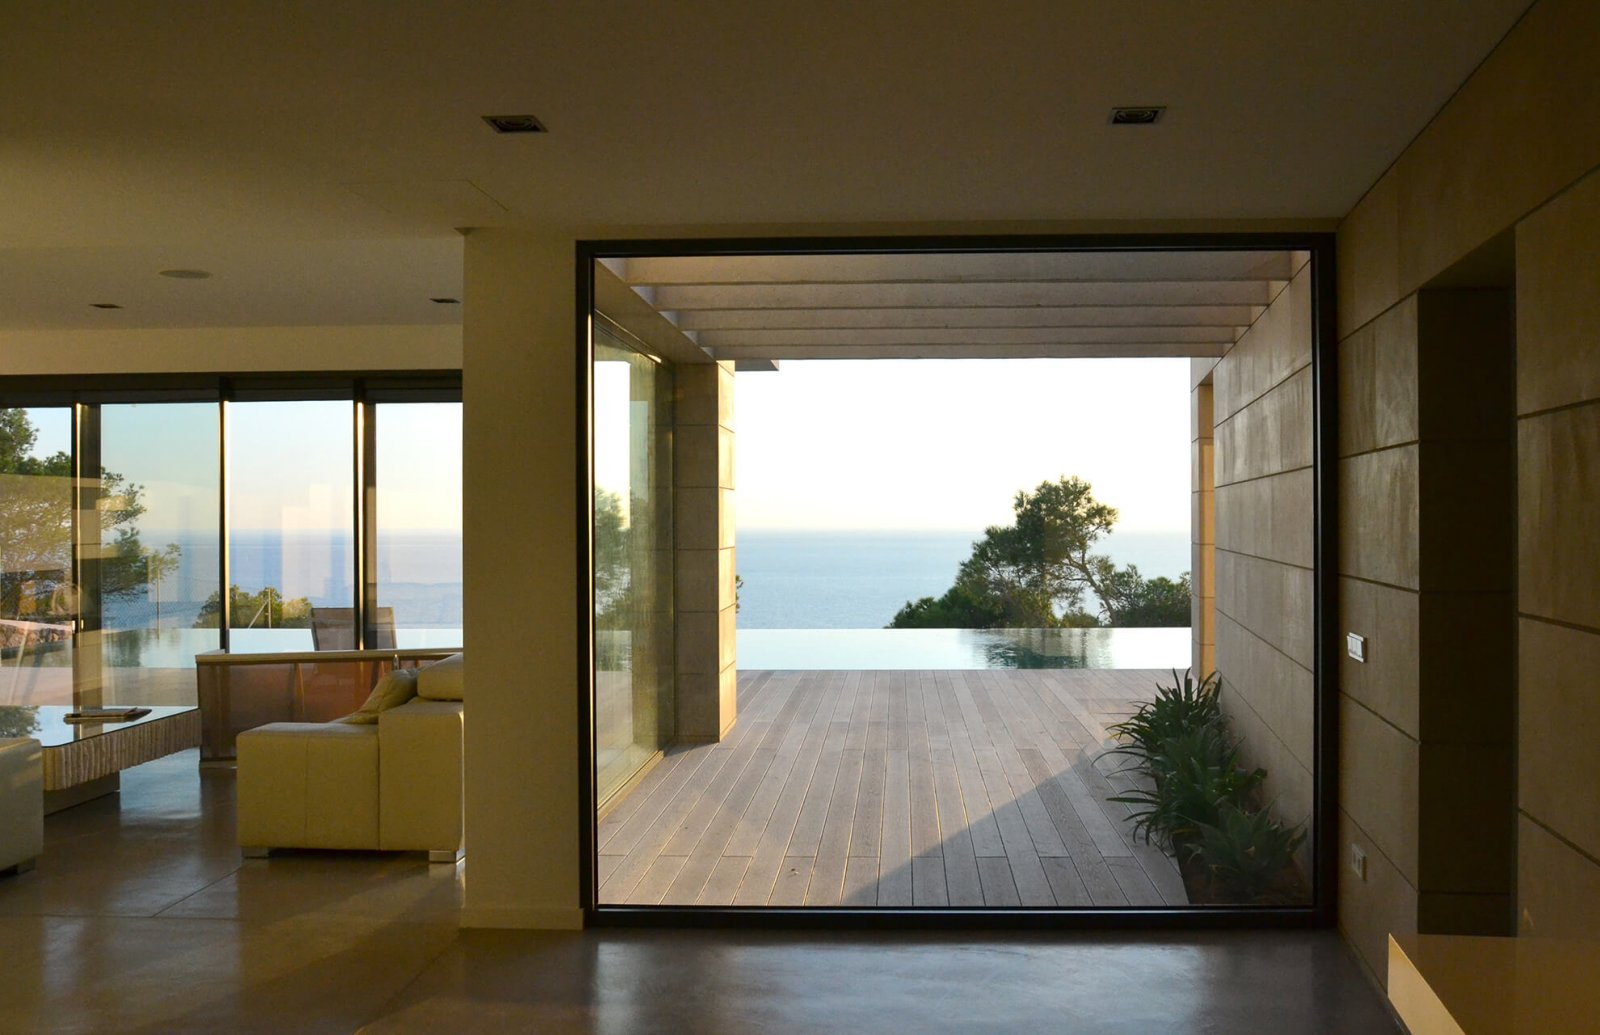 Interior view of the house with large windows, infinity pool and the sea in the background